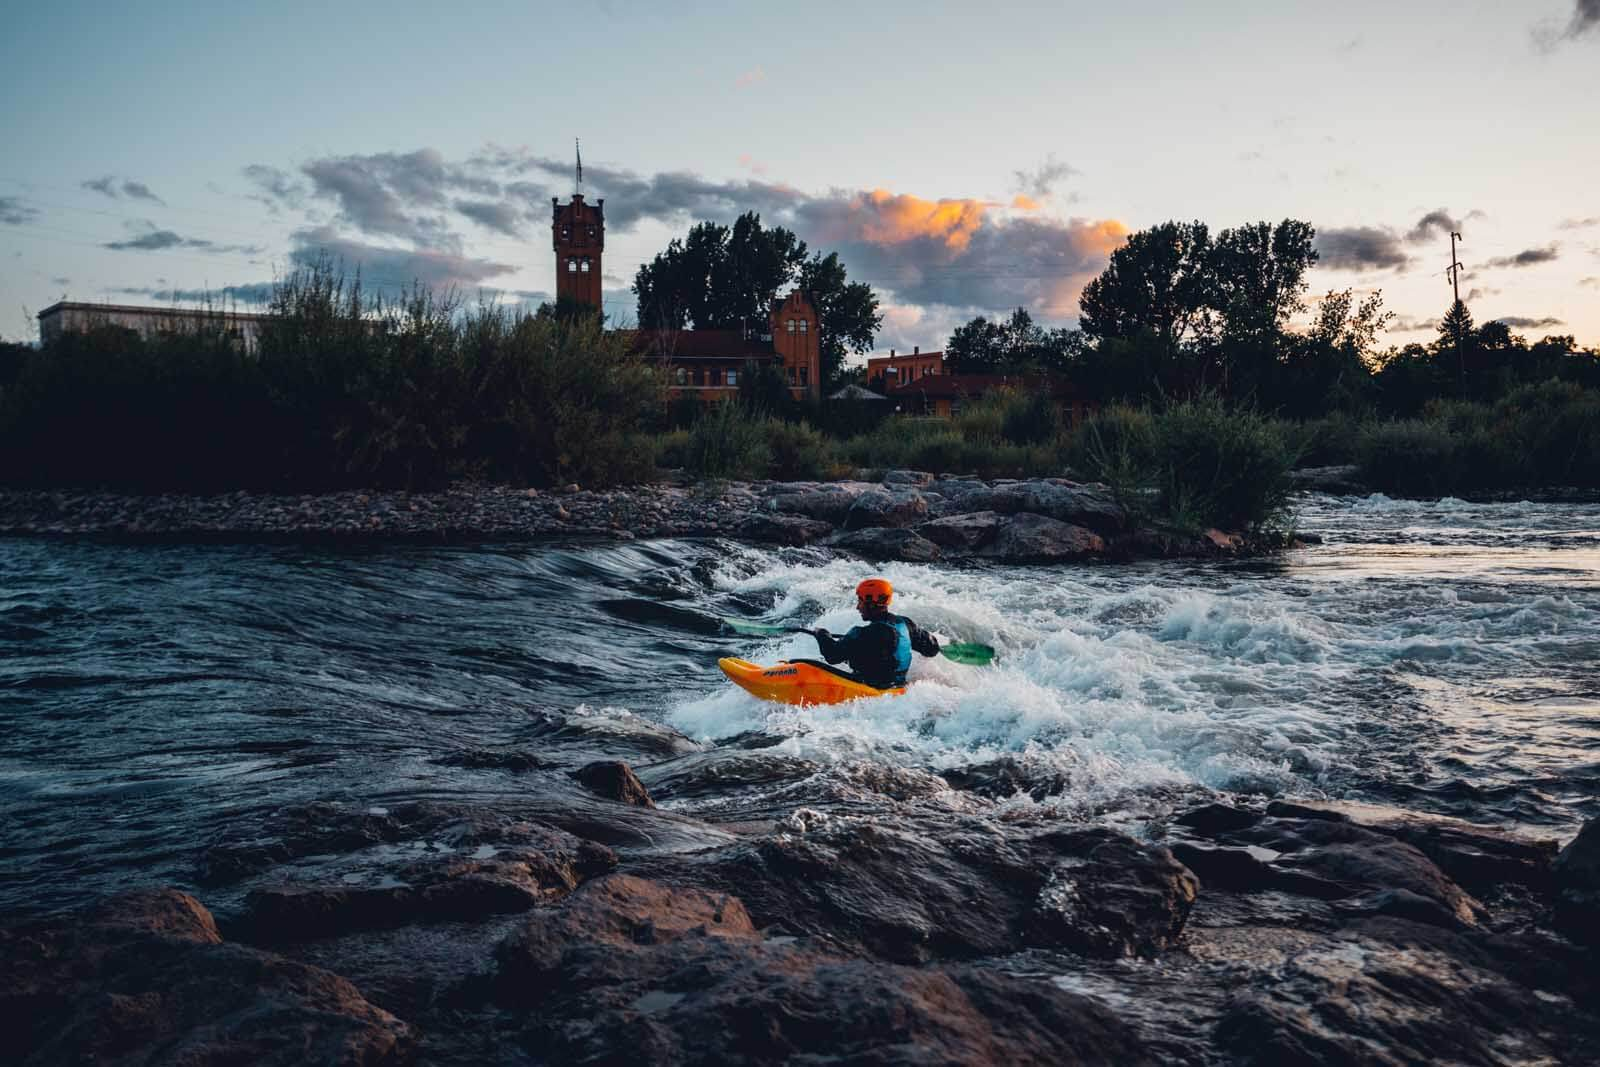 Kayaker practicing at Brennans Wave in Missoula Montana